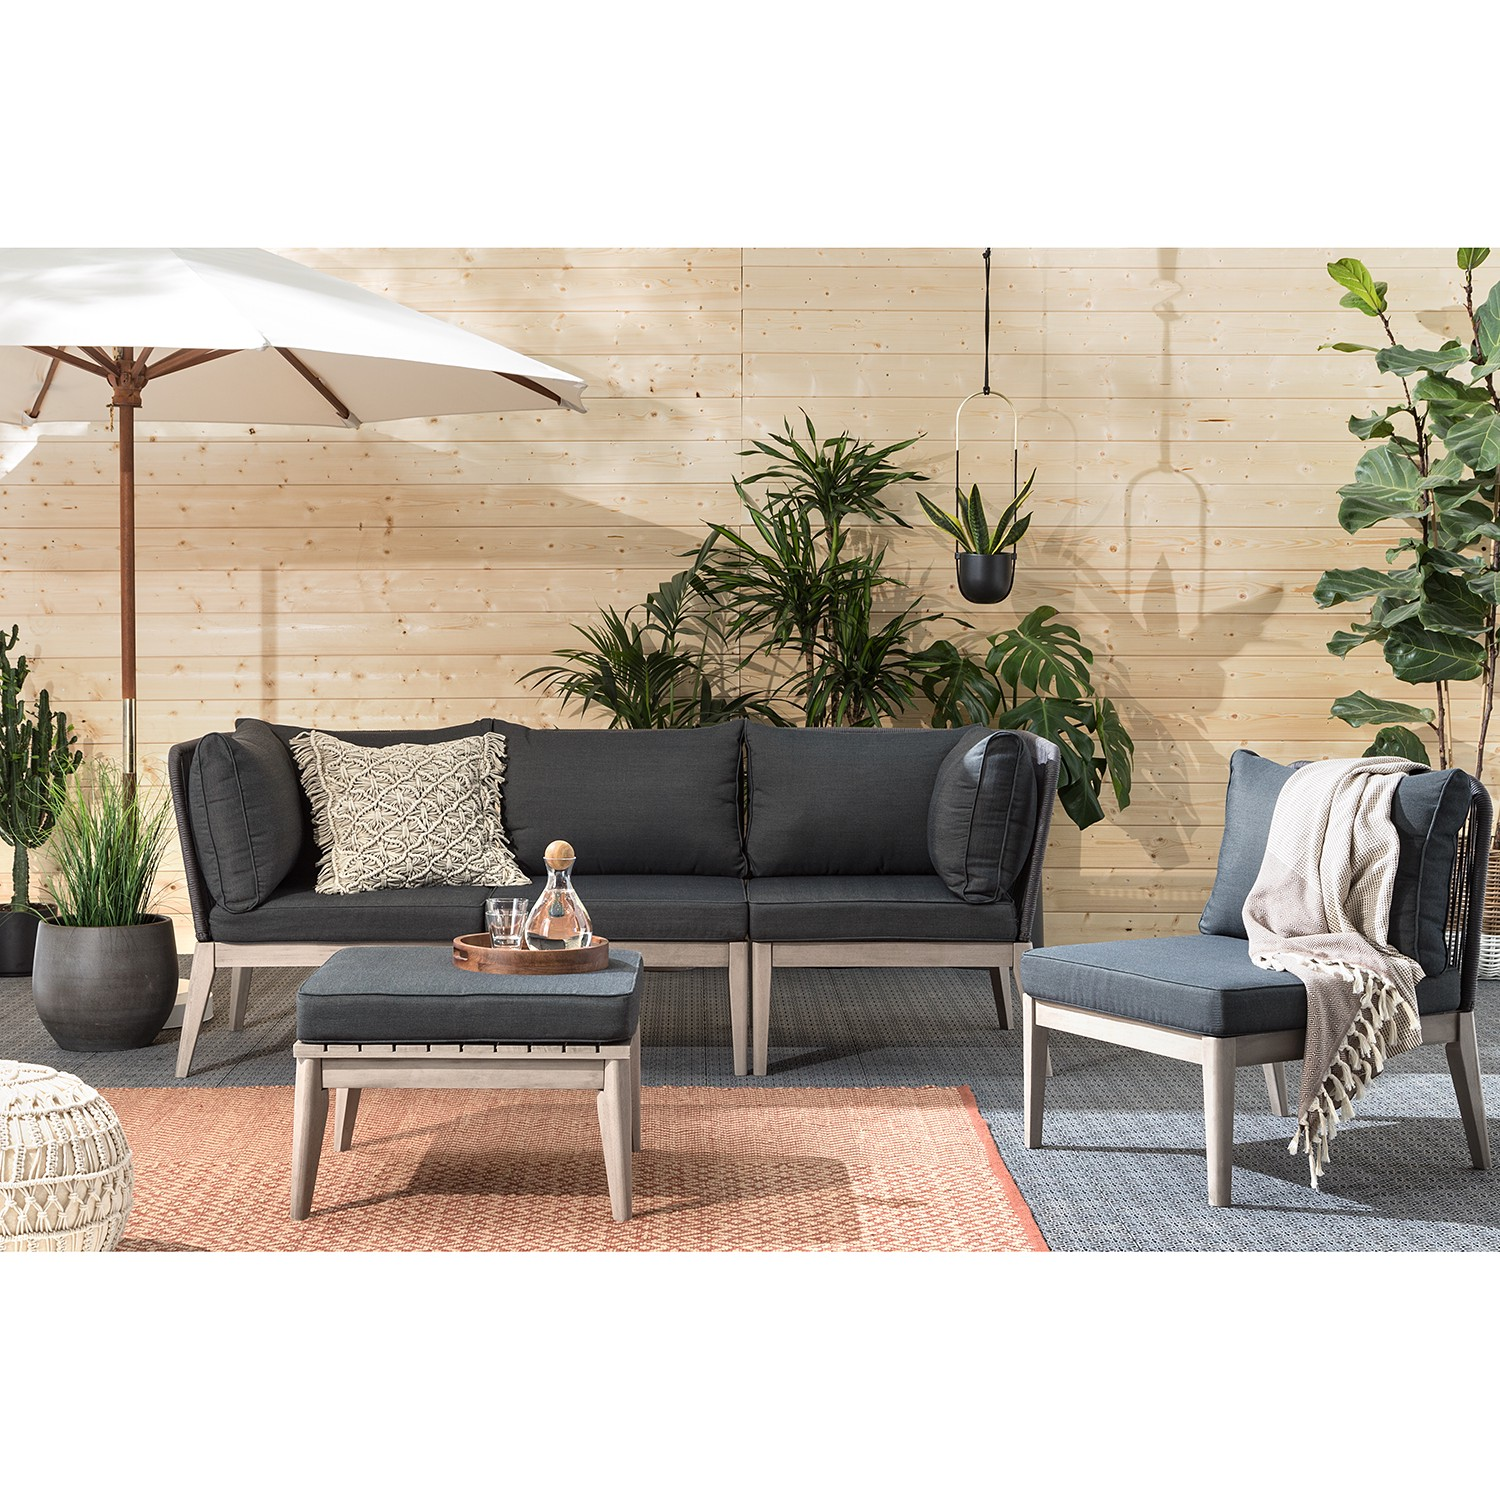 home24 Loungesessel Fifo